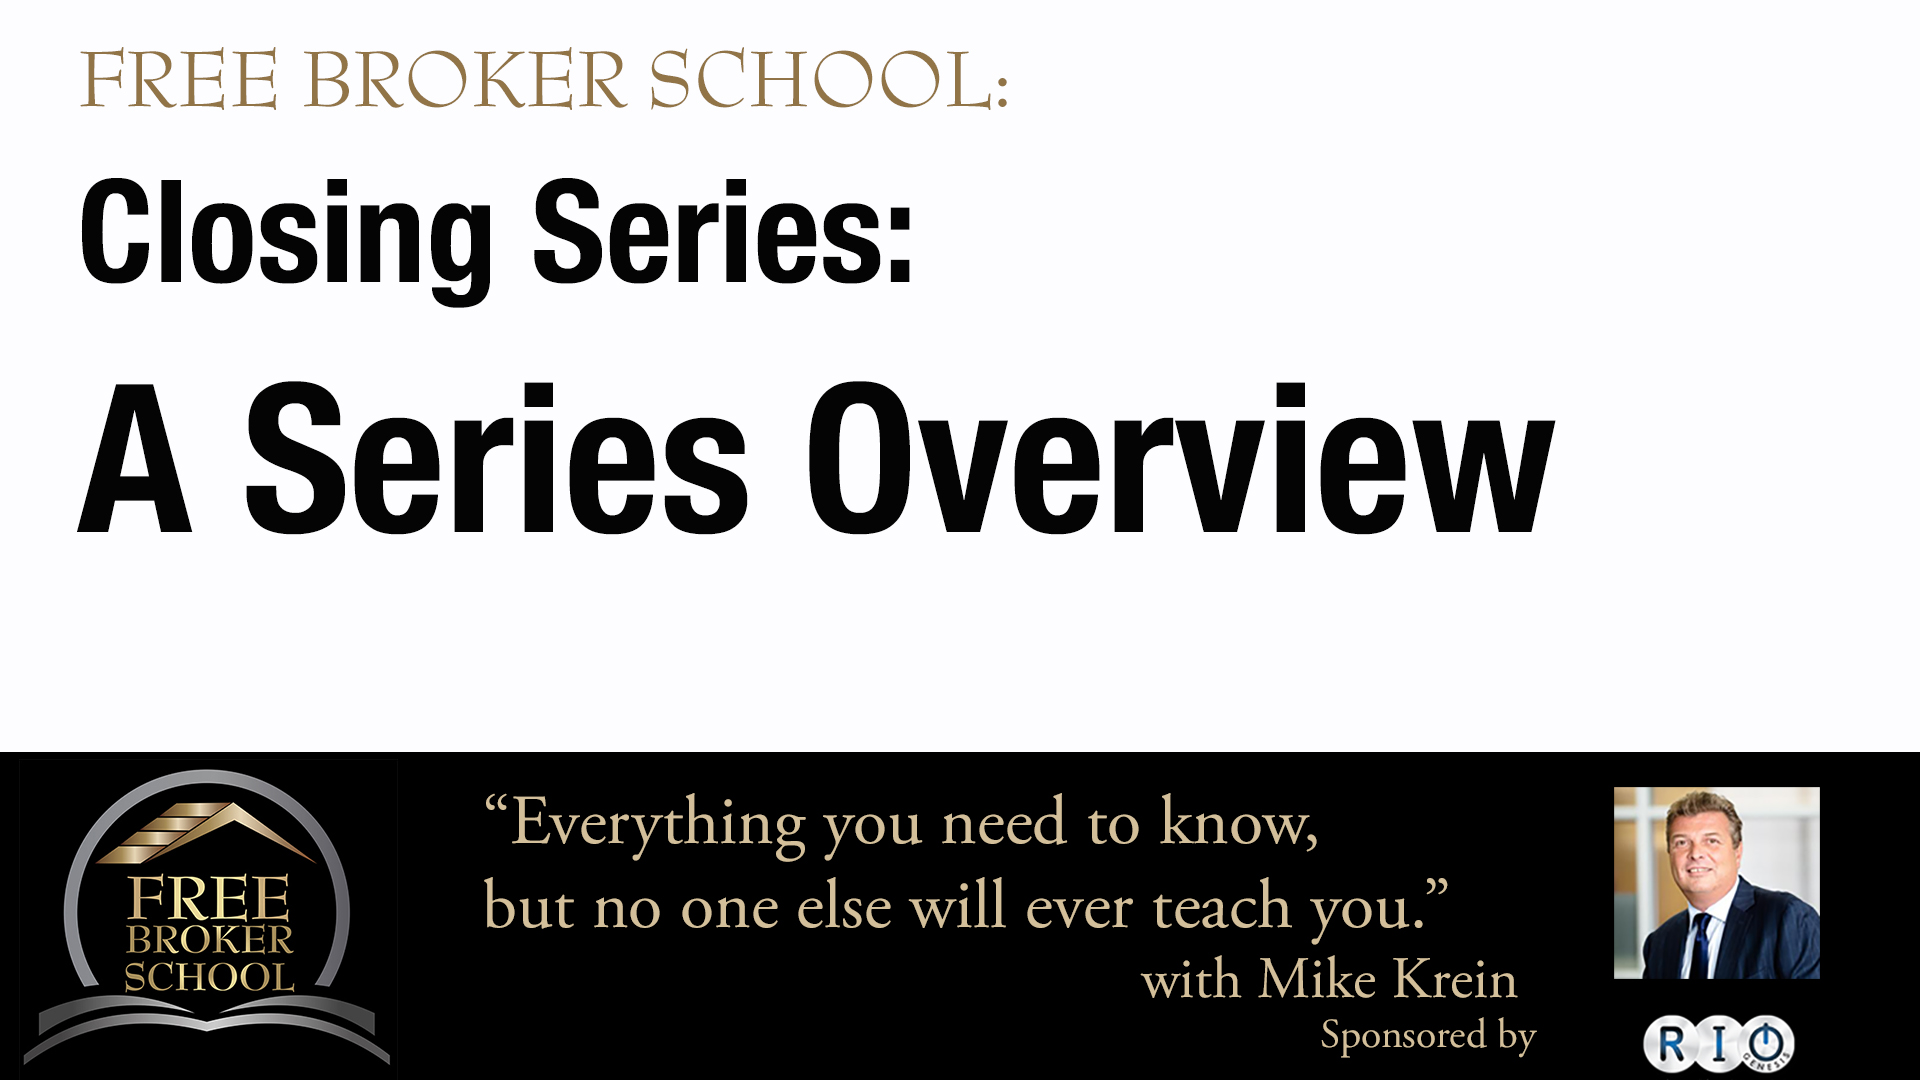 Free Broker School Closing Series Overview